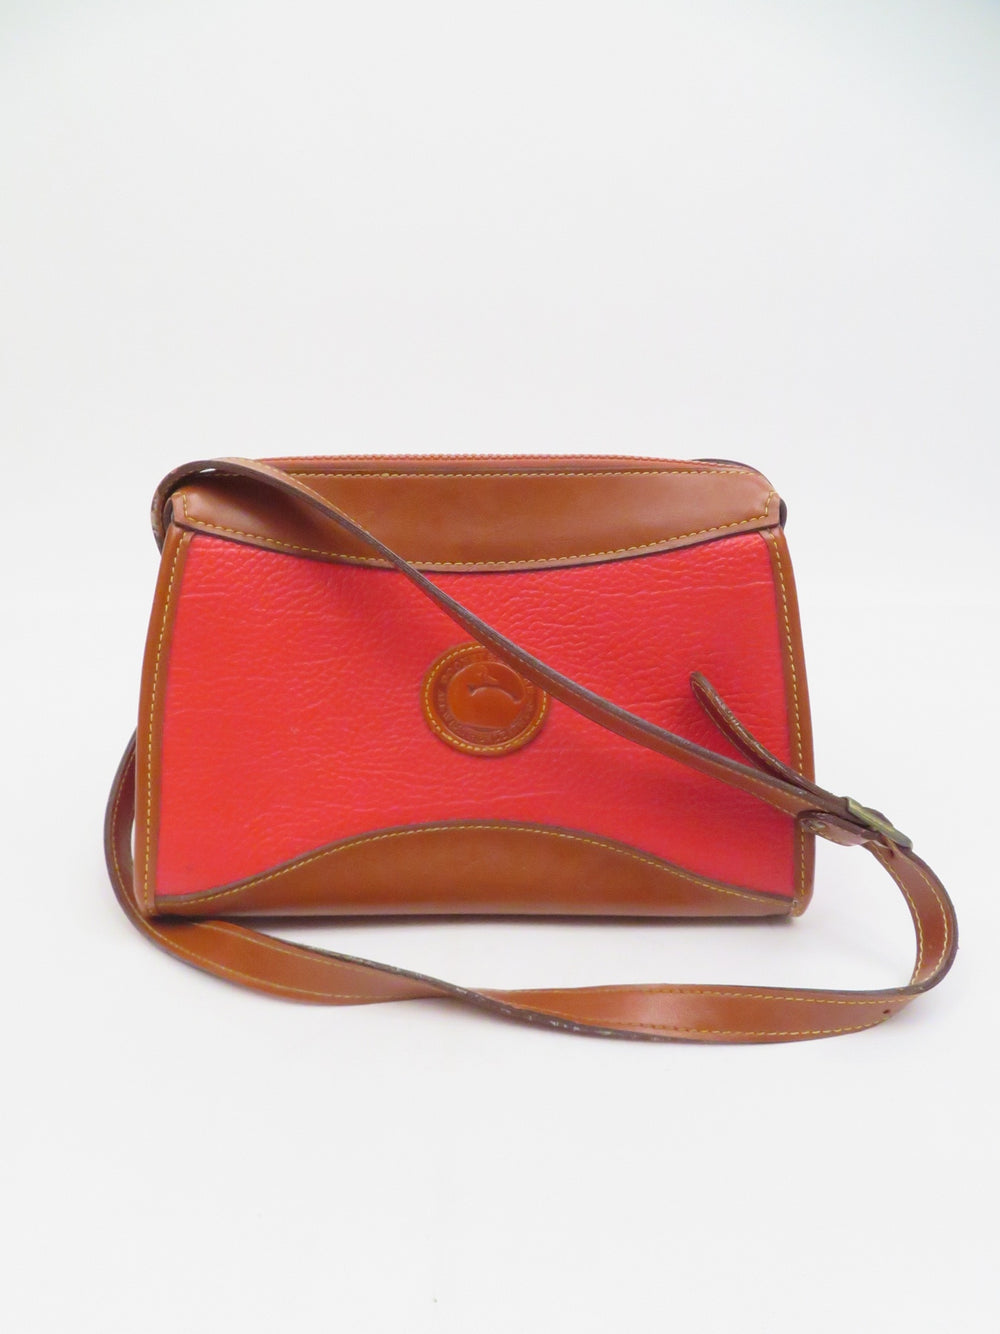 vintage dooney & bourke red and brown crossbody bag. features zippered top closure and adjustable strap.